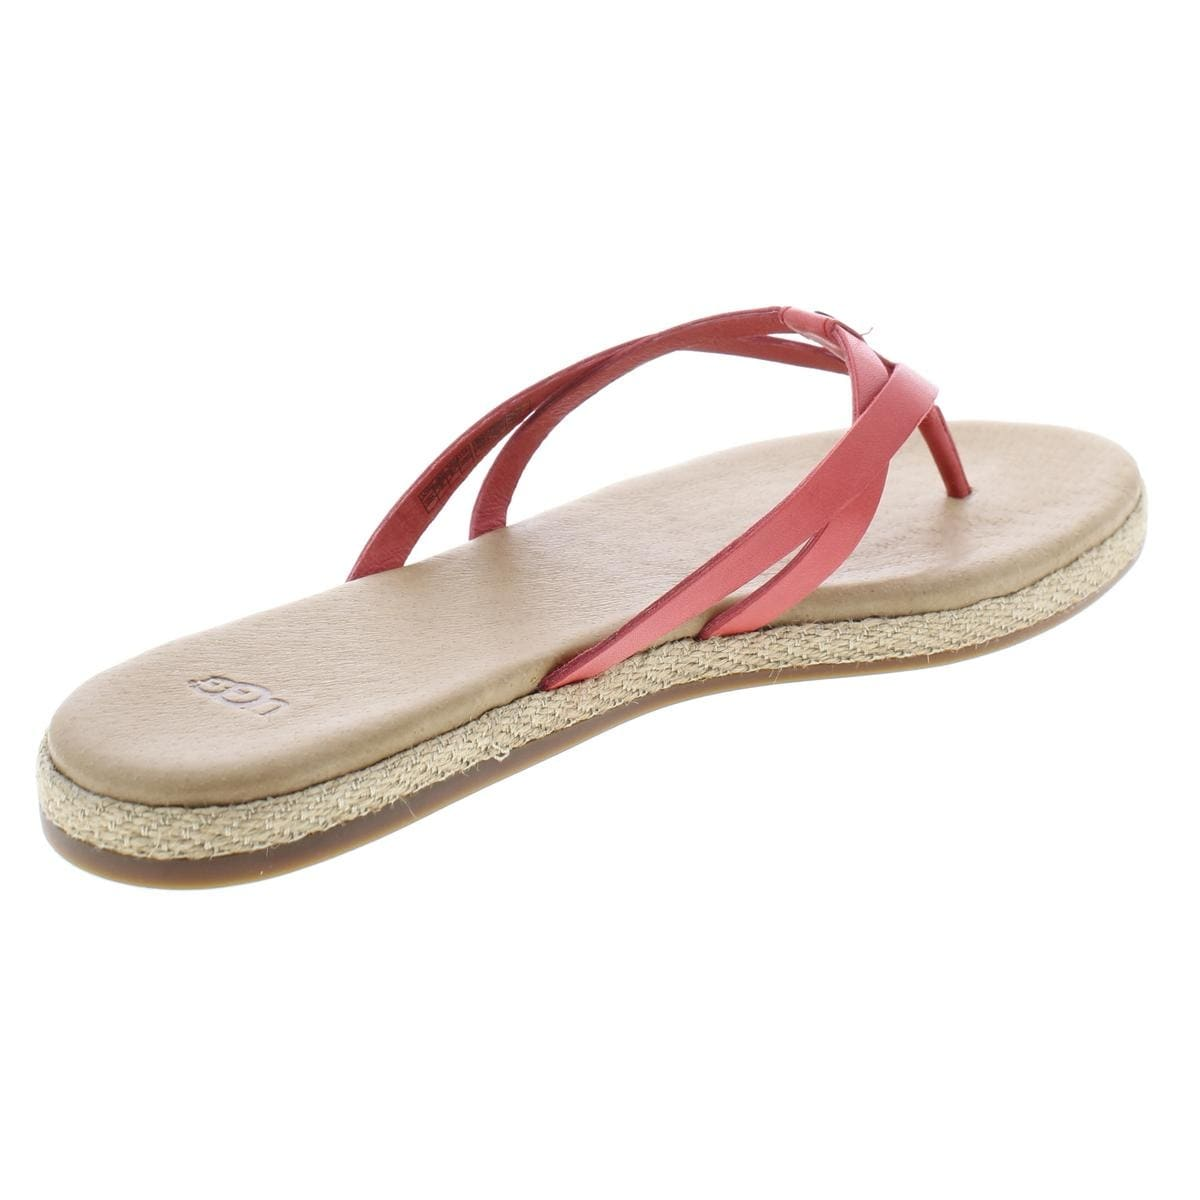 a5f00ec8980 Shop Ugg Womens Annice Flip-Flops Casual Summer - Free Shipping Today -  Overstock - 25460895